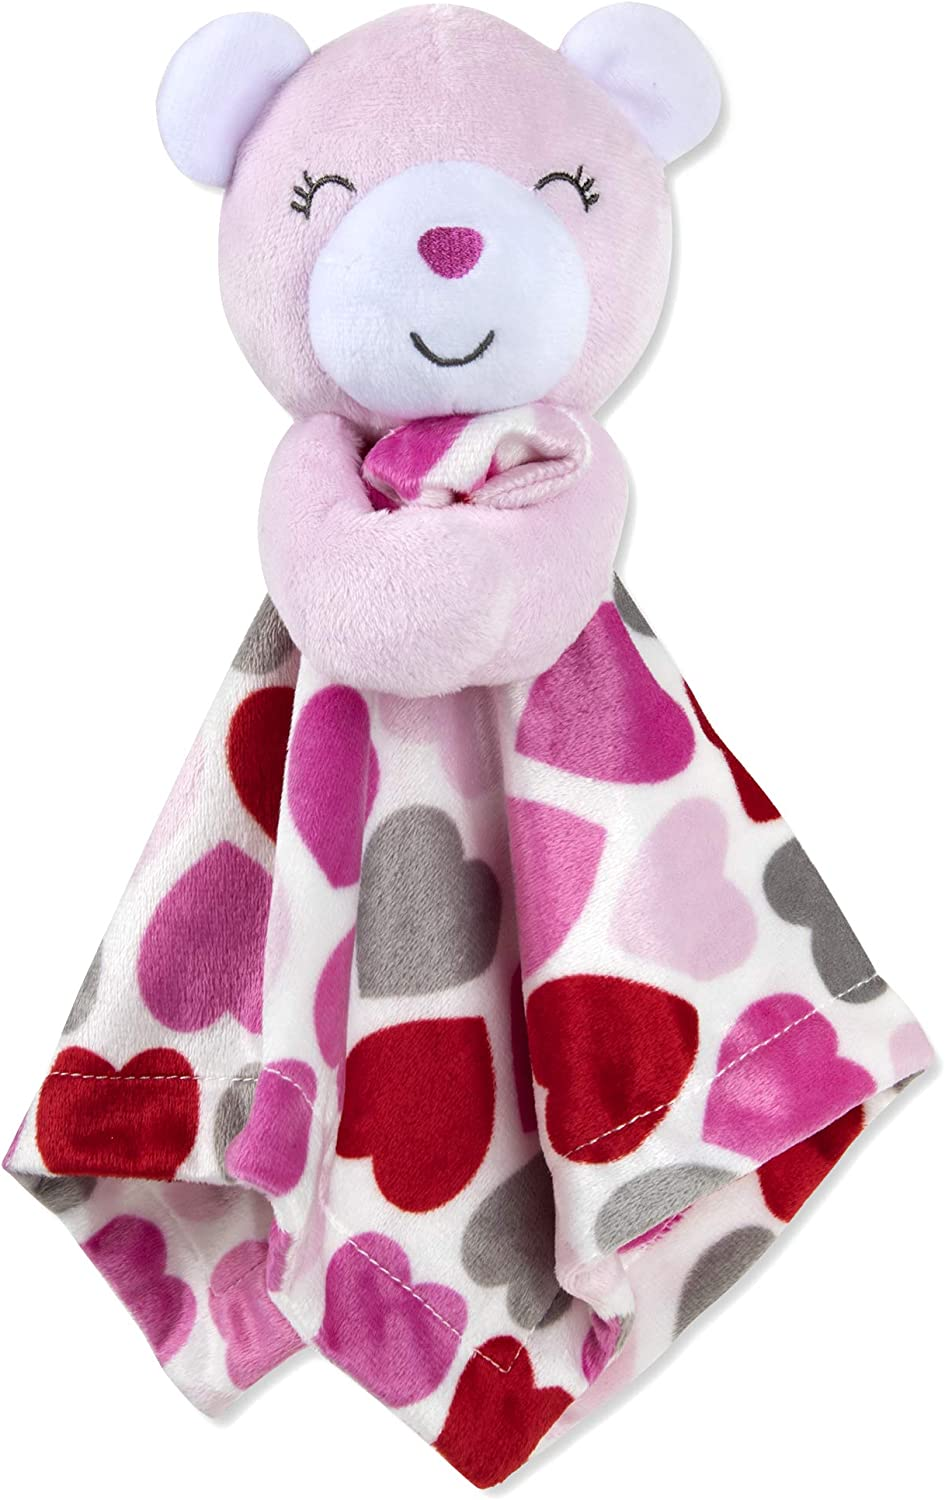 BABY MINKY SENSORY Security Blanket Lovey Plush Pink Gray White Daycare Nap Bed Time Car Rides Stroller Comfort New Baby Shower Gift